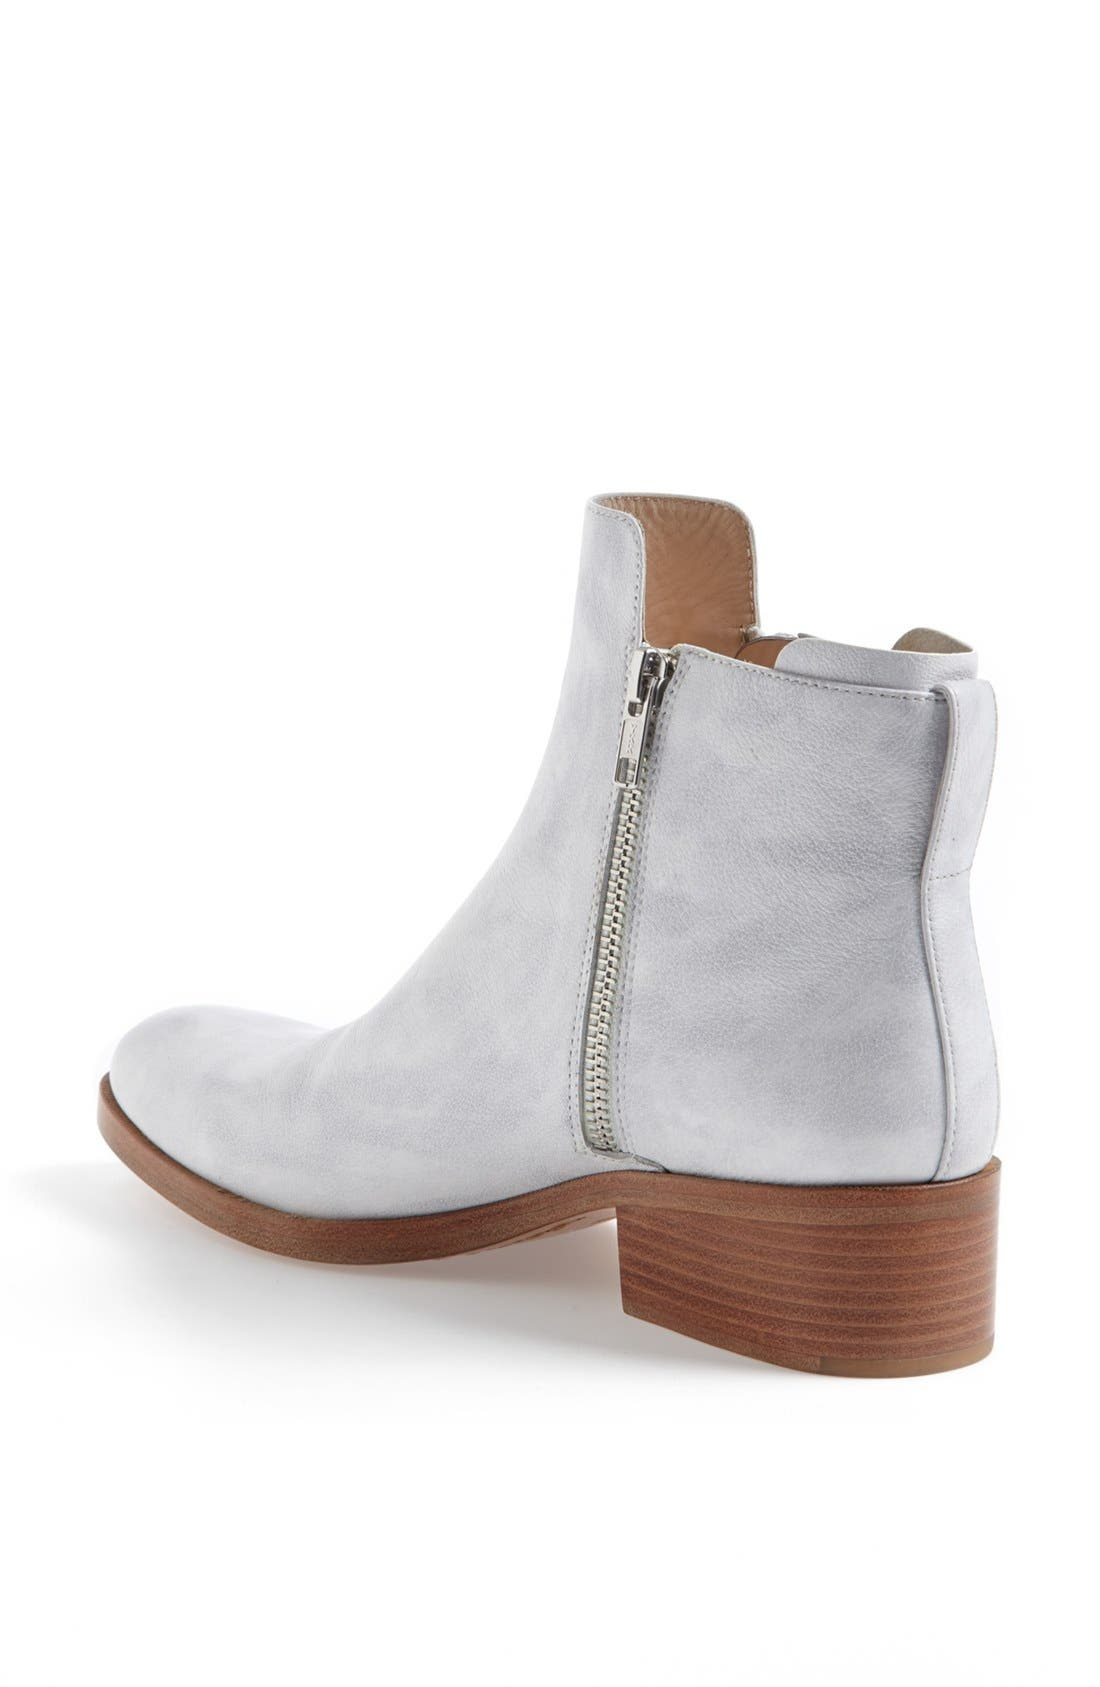 Alternate Image 2  - 3.1 Phillip Lim 'Alexa' Boot